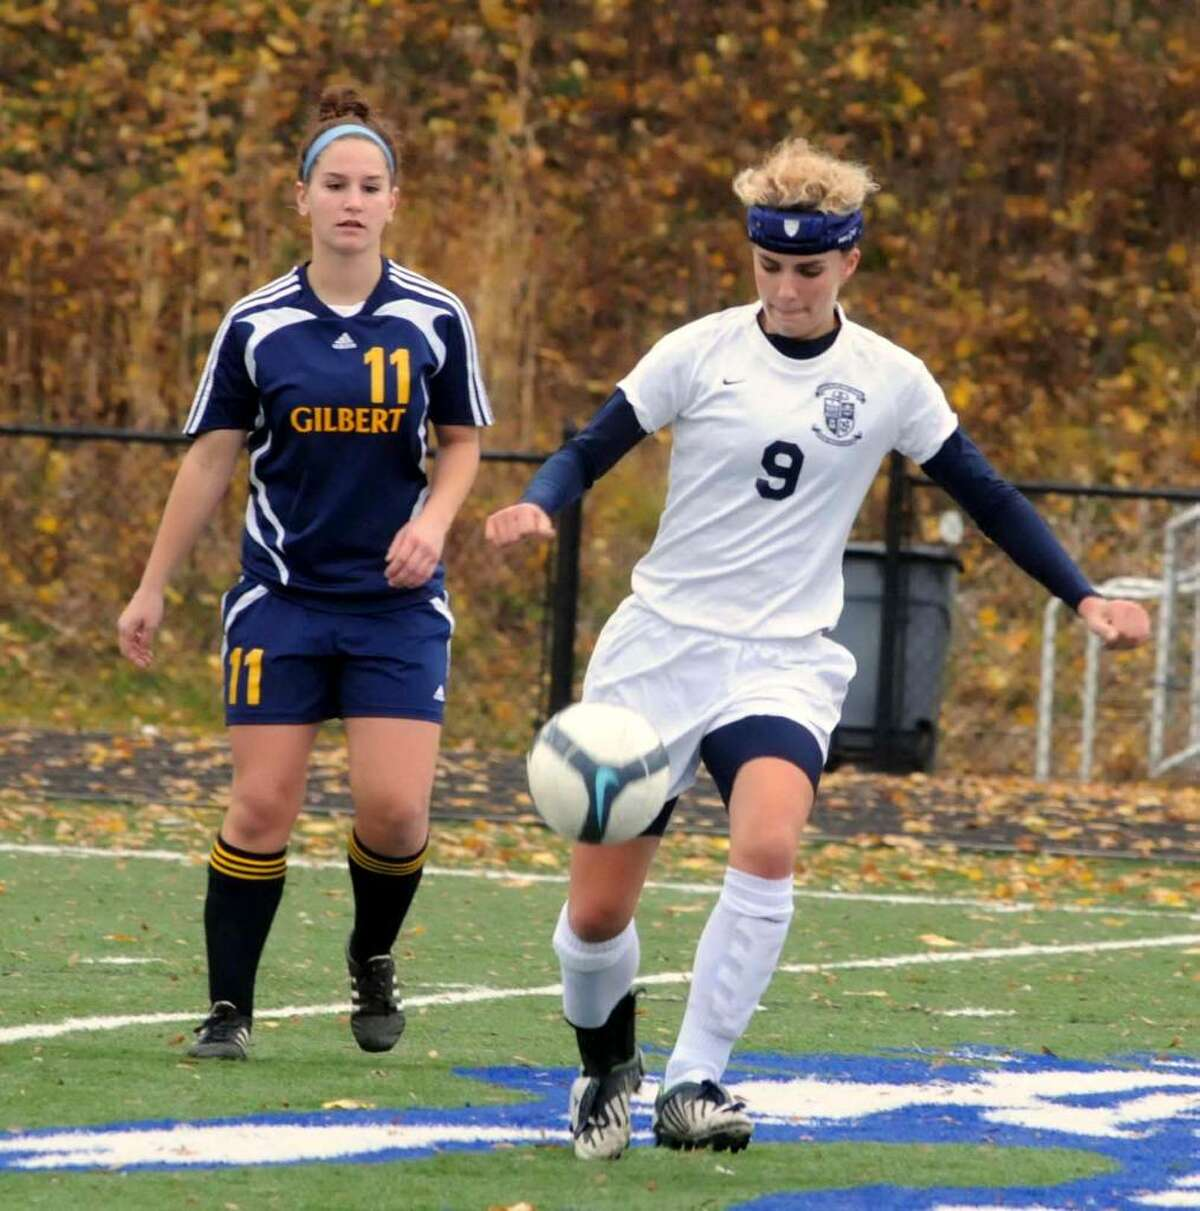 Immaculate's Jen Daily, right, has possession of the ball while Gilbert's Jackie Vaccari comes up from behind at the 2009 Girls Soccer Class S Quarterfinals on Friday Nov.13 at Immaculate High School in Danbury CT. Immaculate vs Gilbert High School, Winsted, CT.